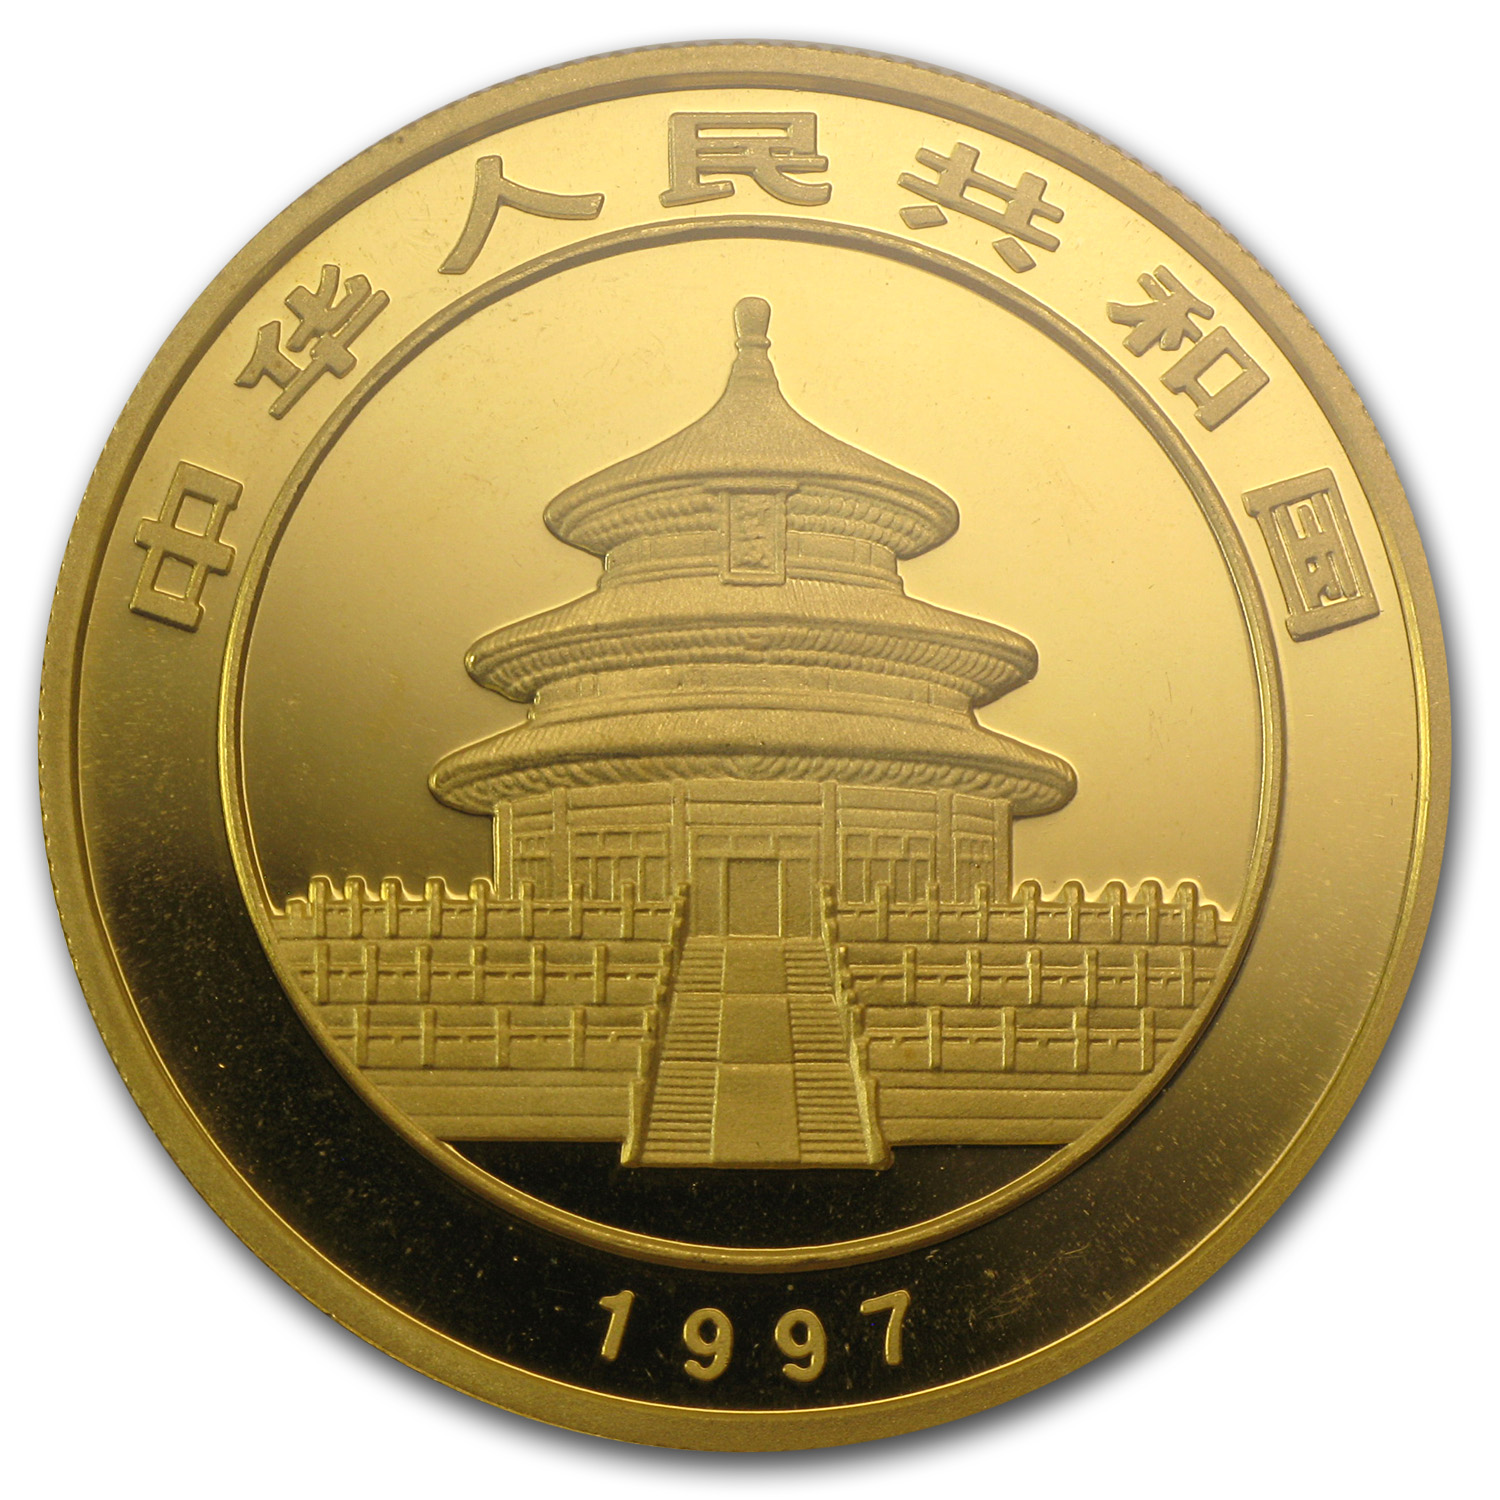 1997 China 1 oz Gold Panda Large Date MS-69 PCGS